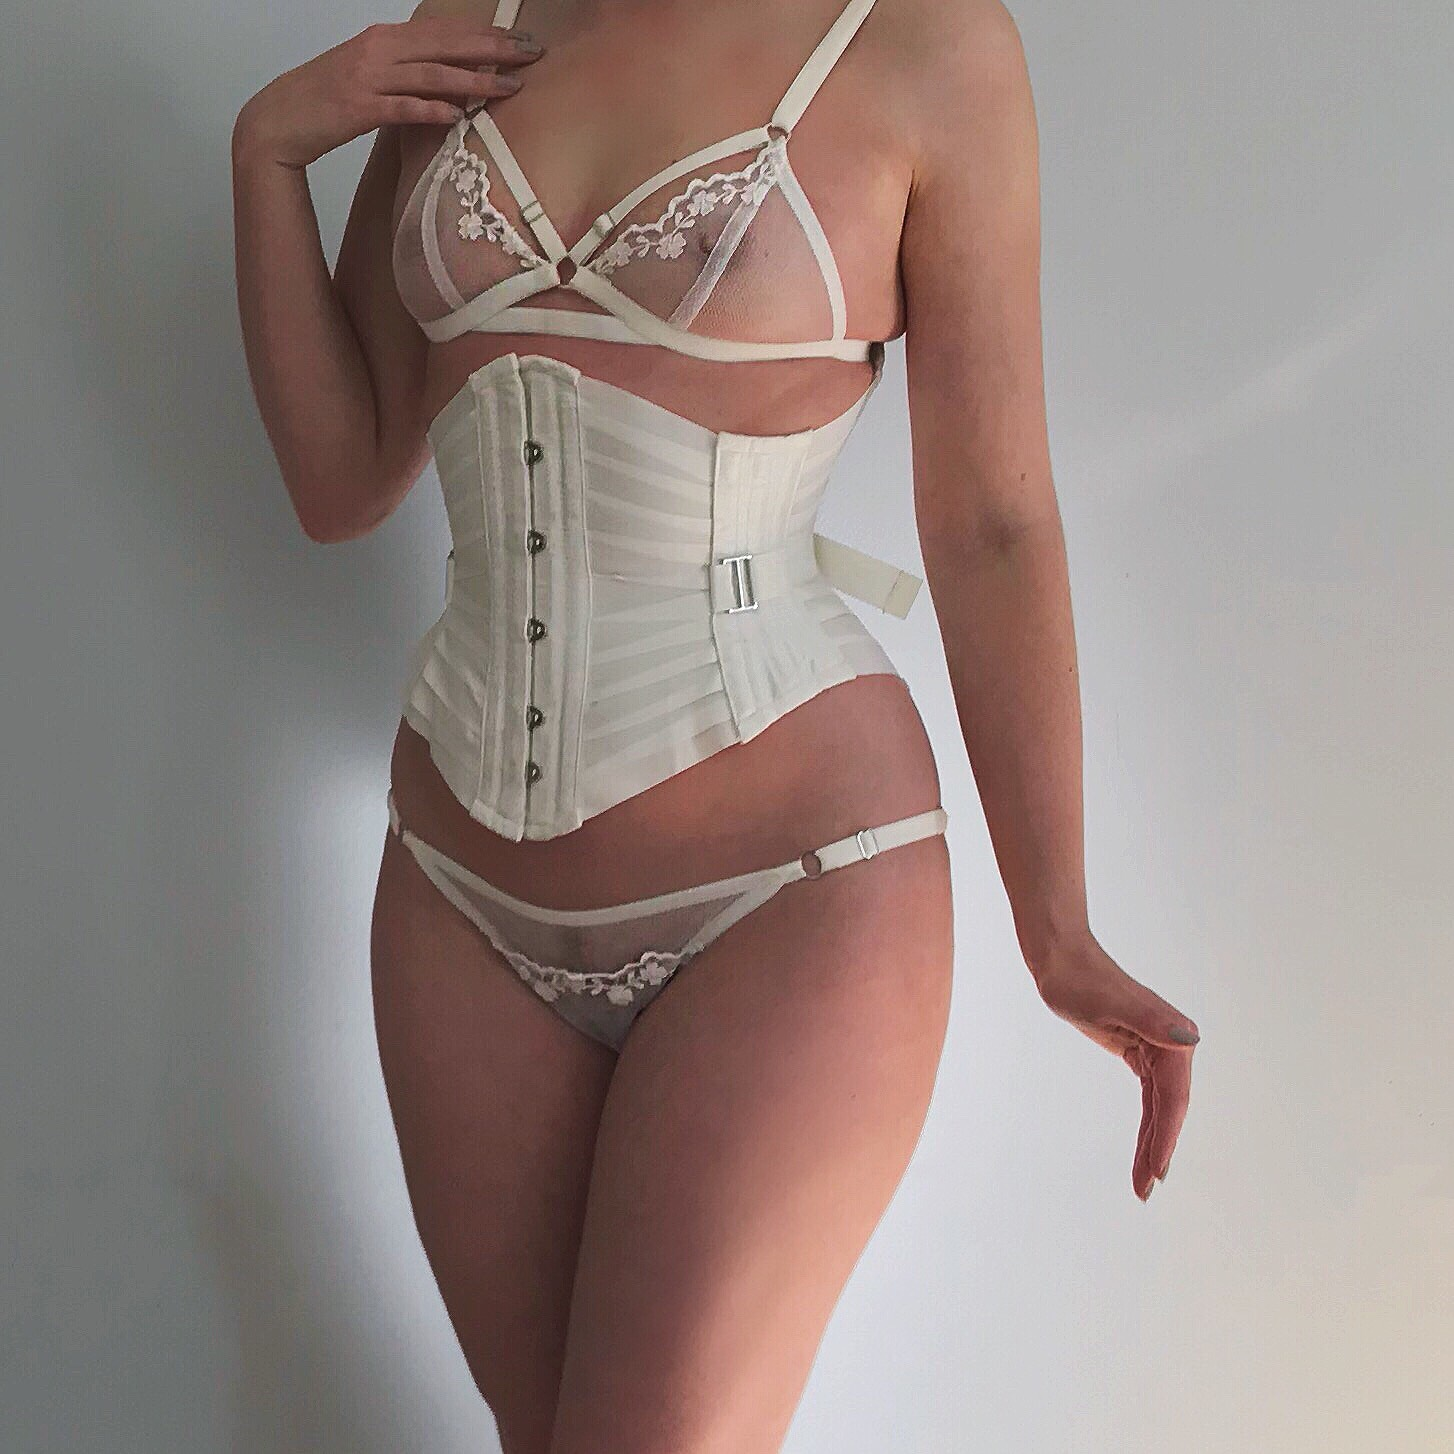 72af03ad2b ... 1454 × 1454 in IN THE NEST  ORCHID CORSETRY DUSK IVORY INC IVORY RIBBON  CORSET